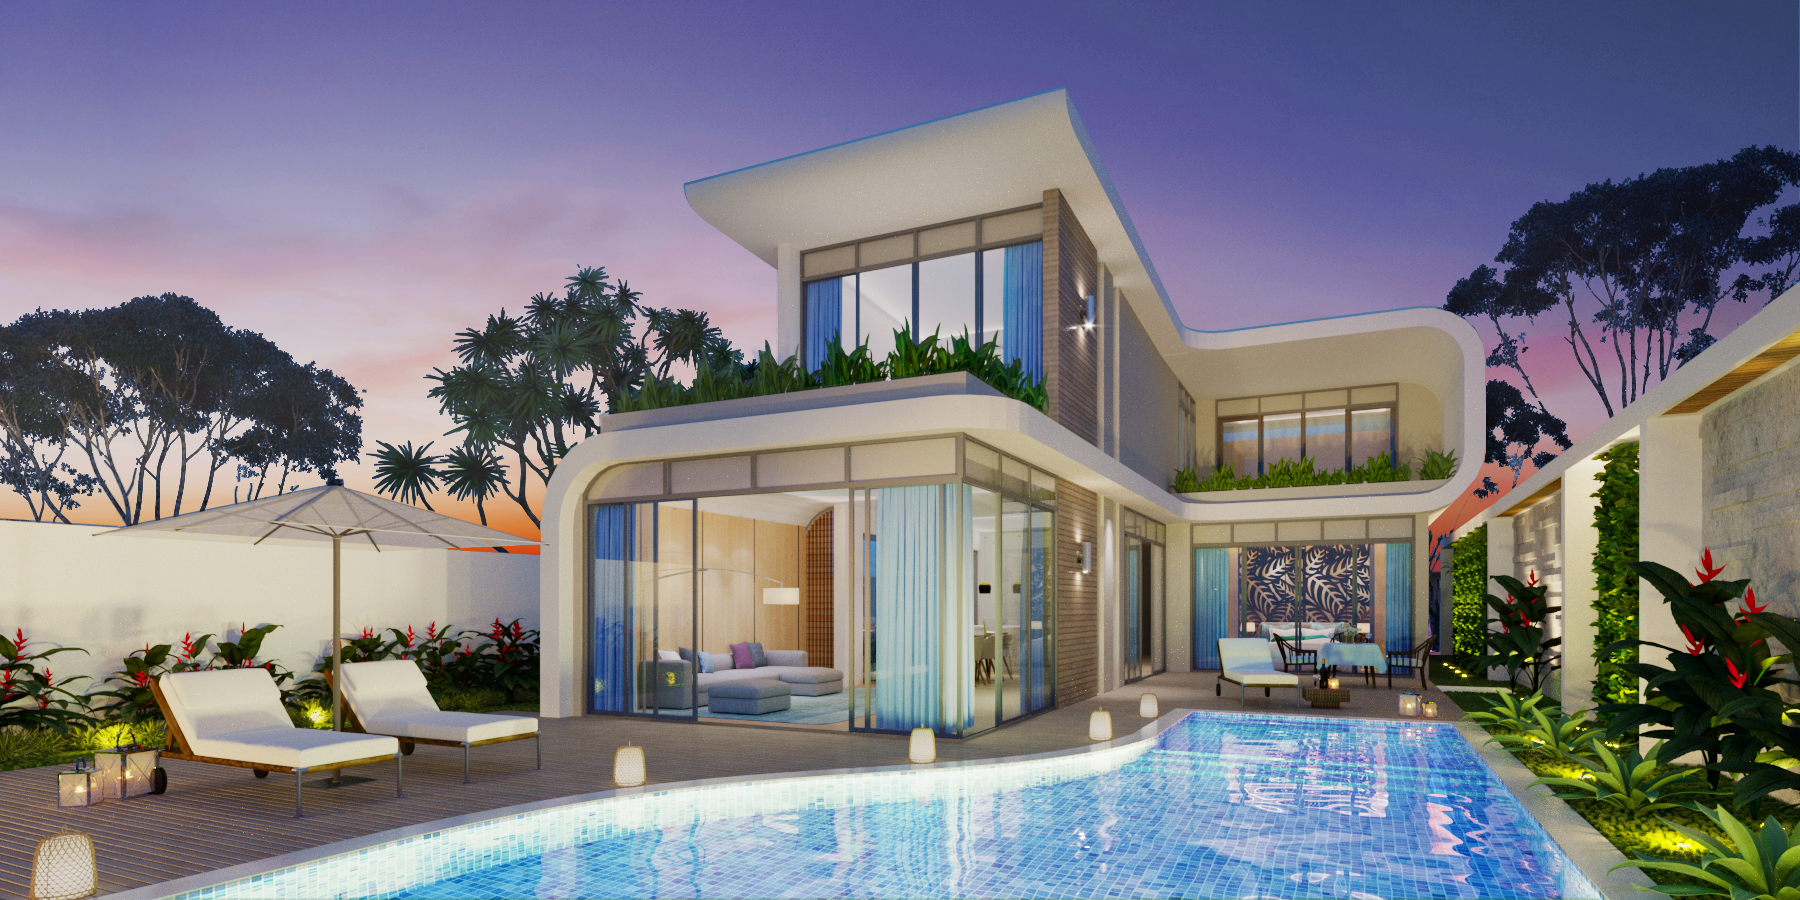 The hotel will also have 36 three-bedroom villas.